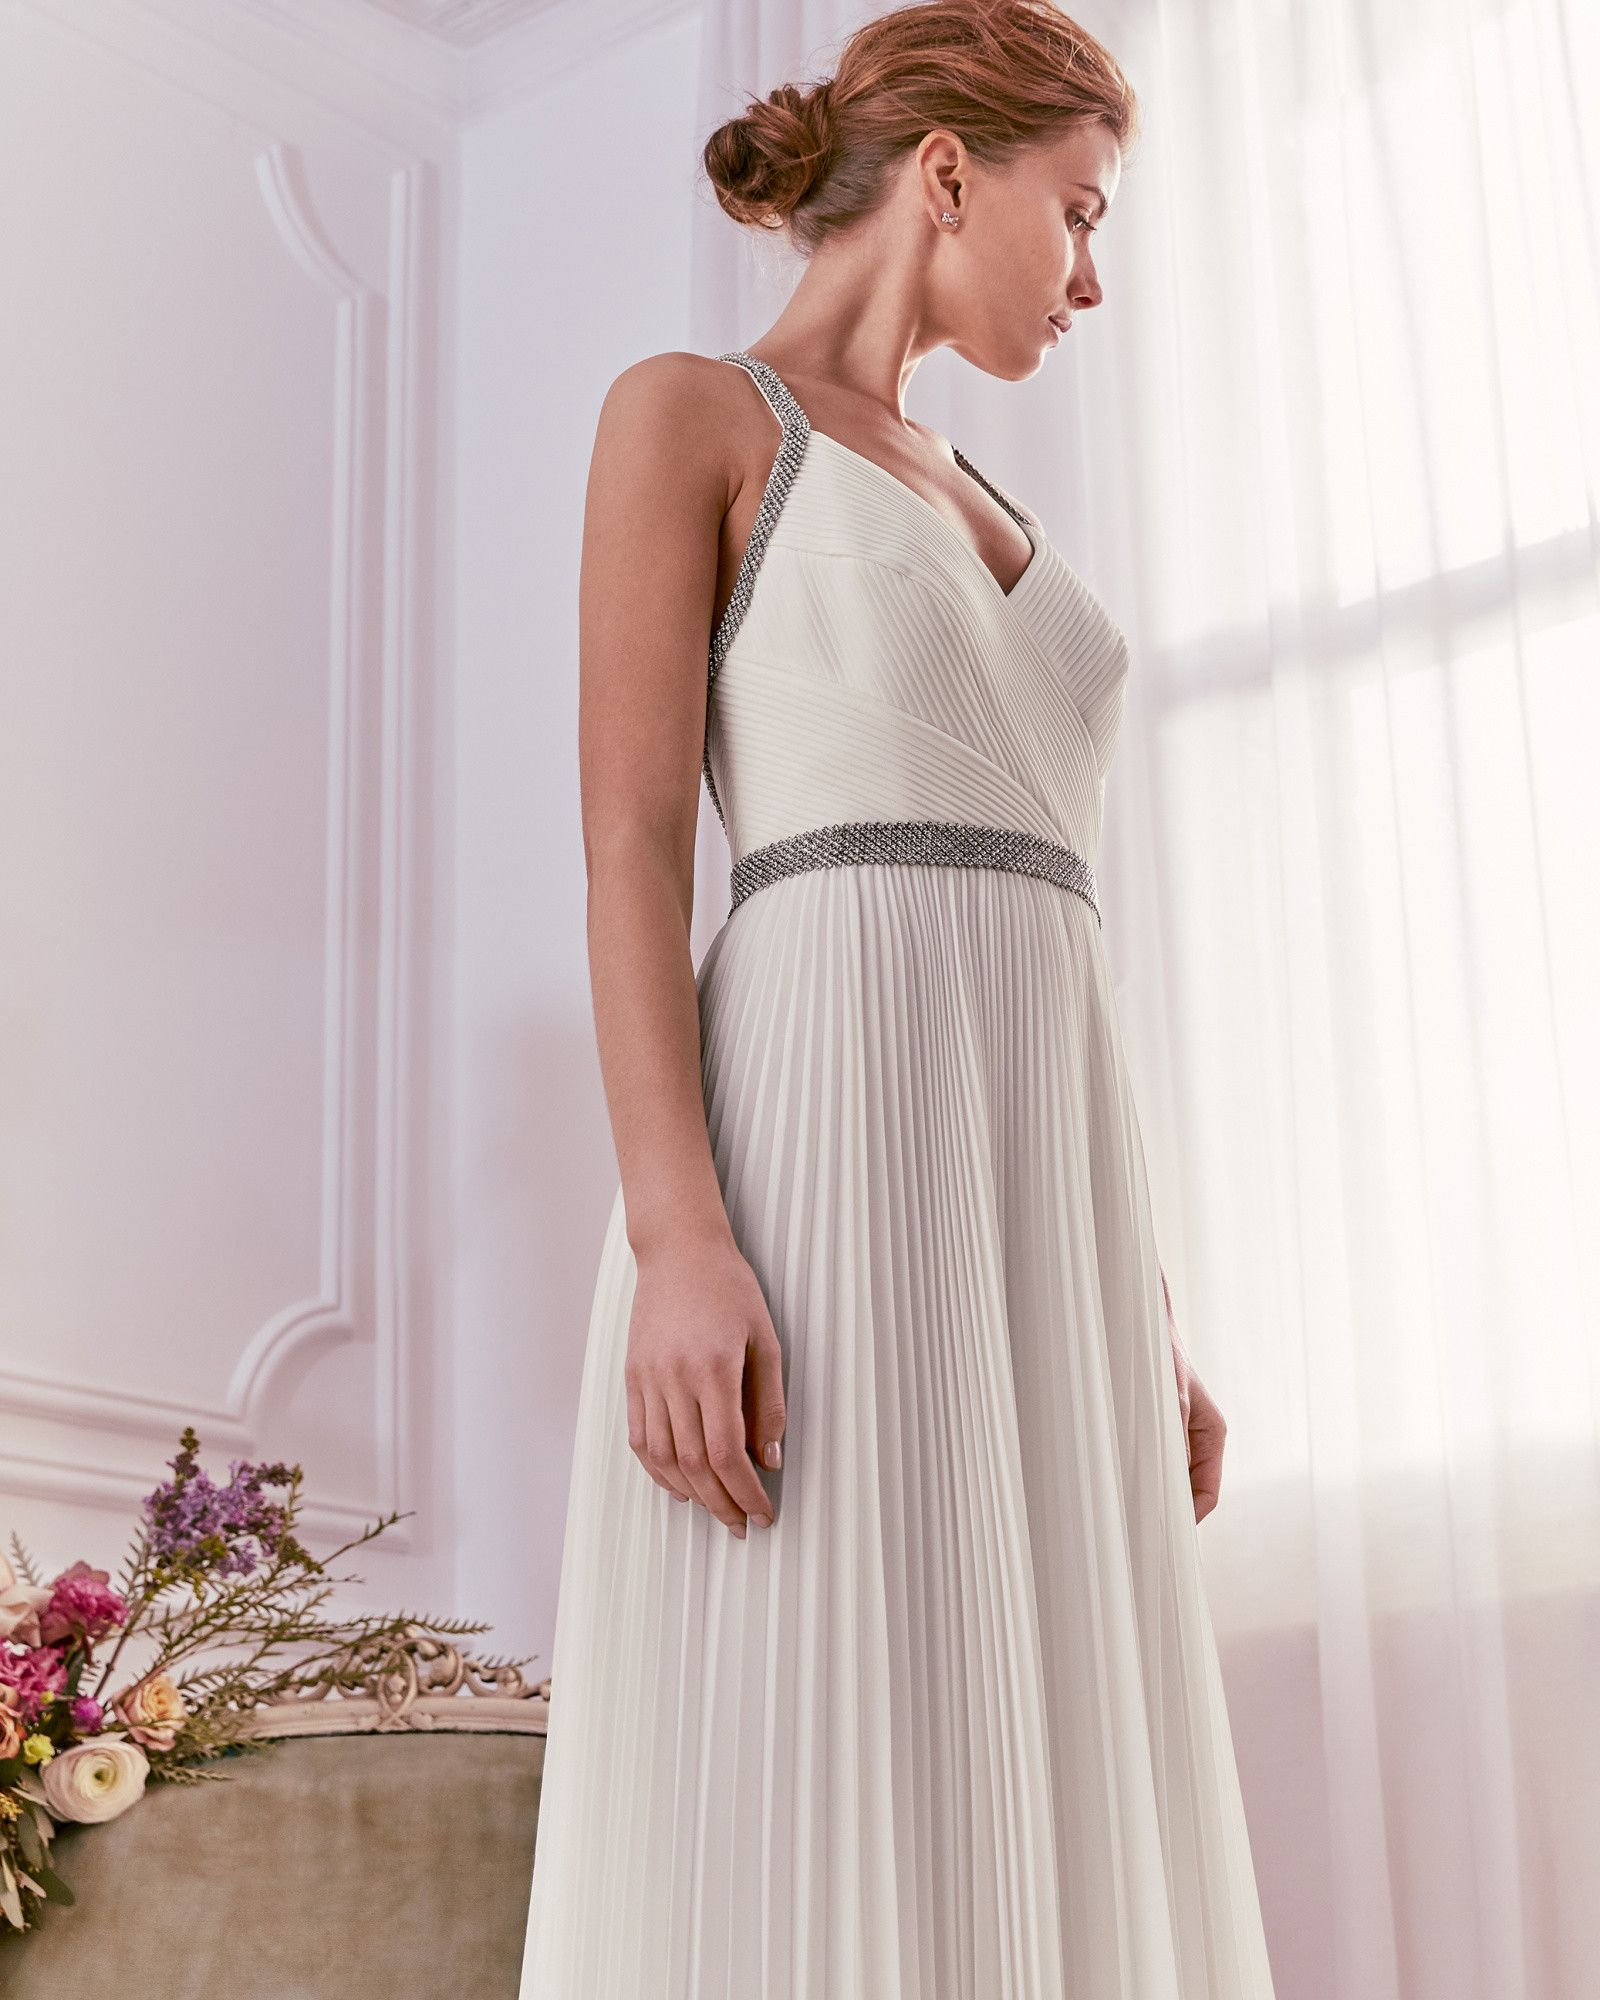 VERITYY Embellished pleated maxi dress TedToToe Casual